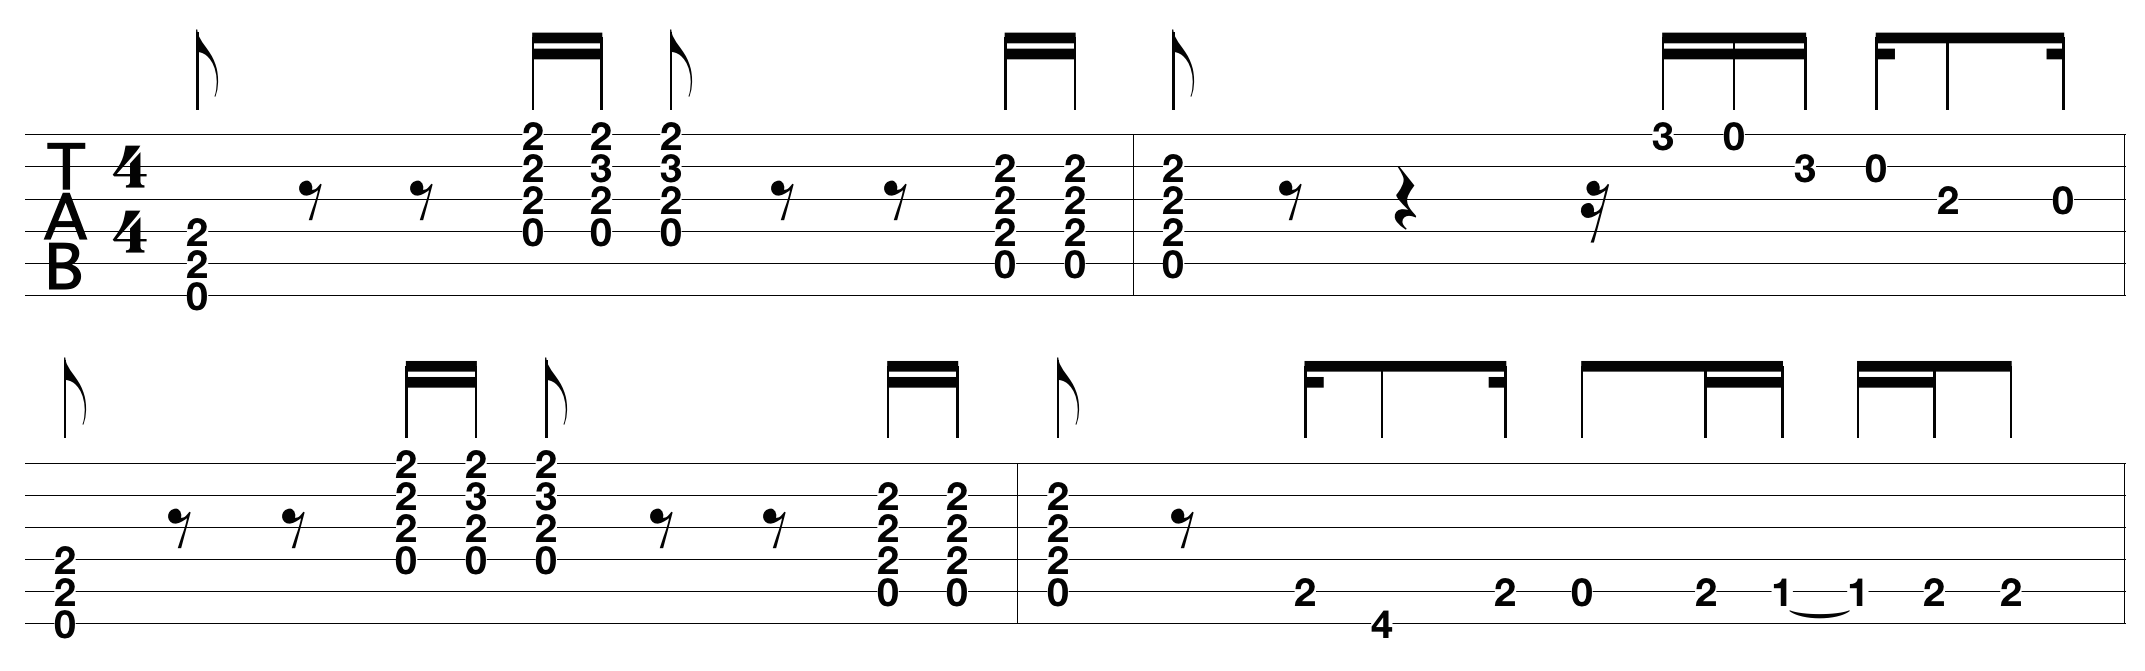 easy-to-learn-guitar-tabs_tab.png